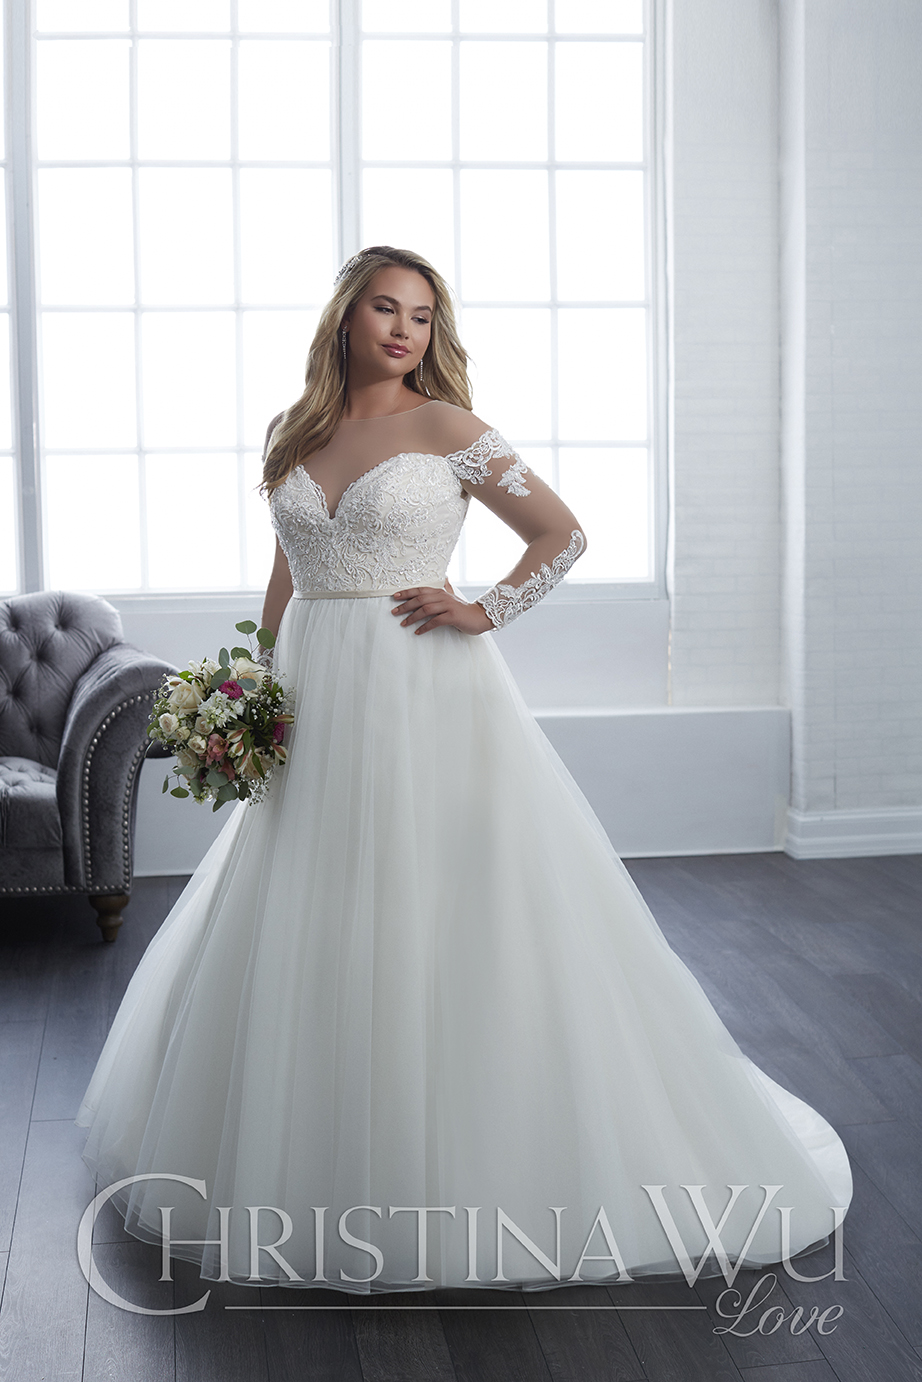 Christina Wu Love 29301 Dress - MadameBridal.com